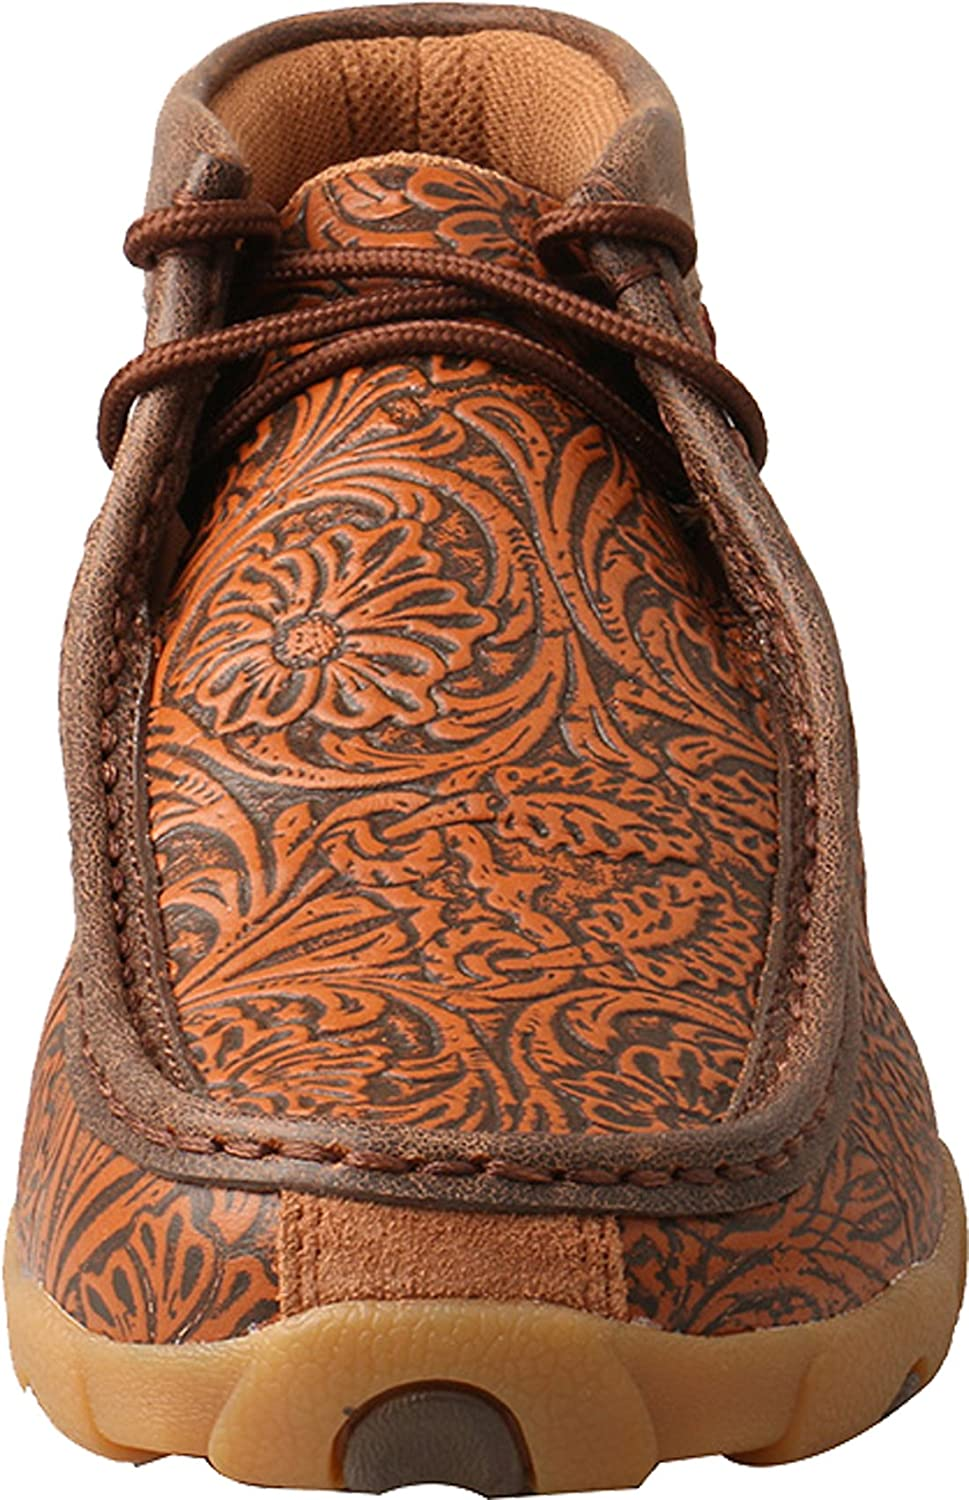 Twisted X Women's Leather Lace-up Rubber Sole Driving Moccasins - Brown/Turquoise B07FPM9MP2 7.5 M US|Tan / Tooled